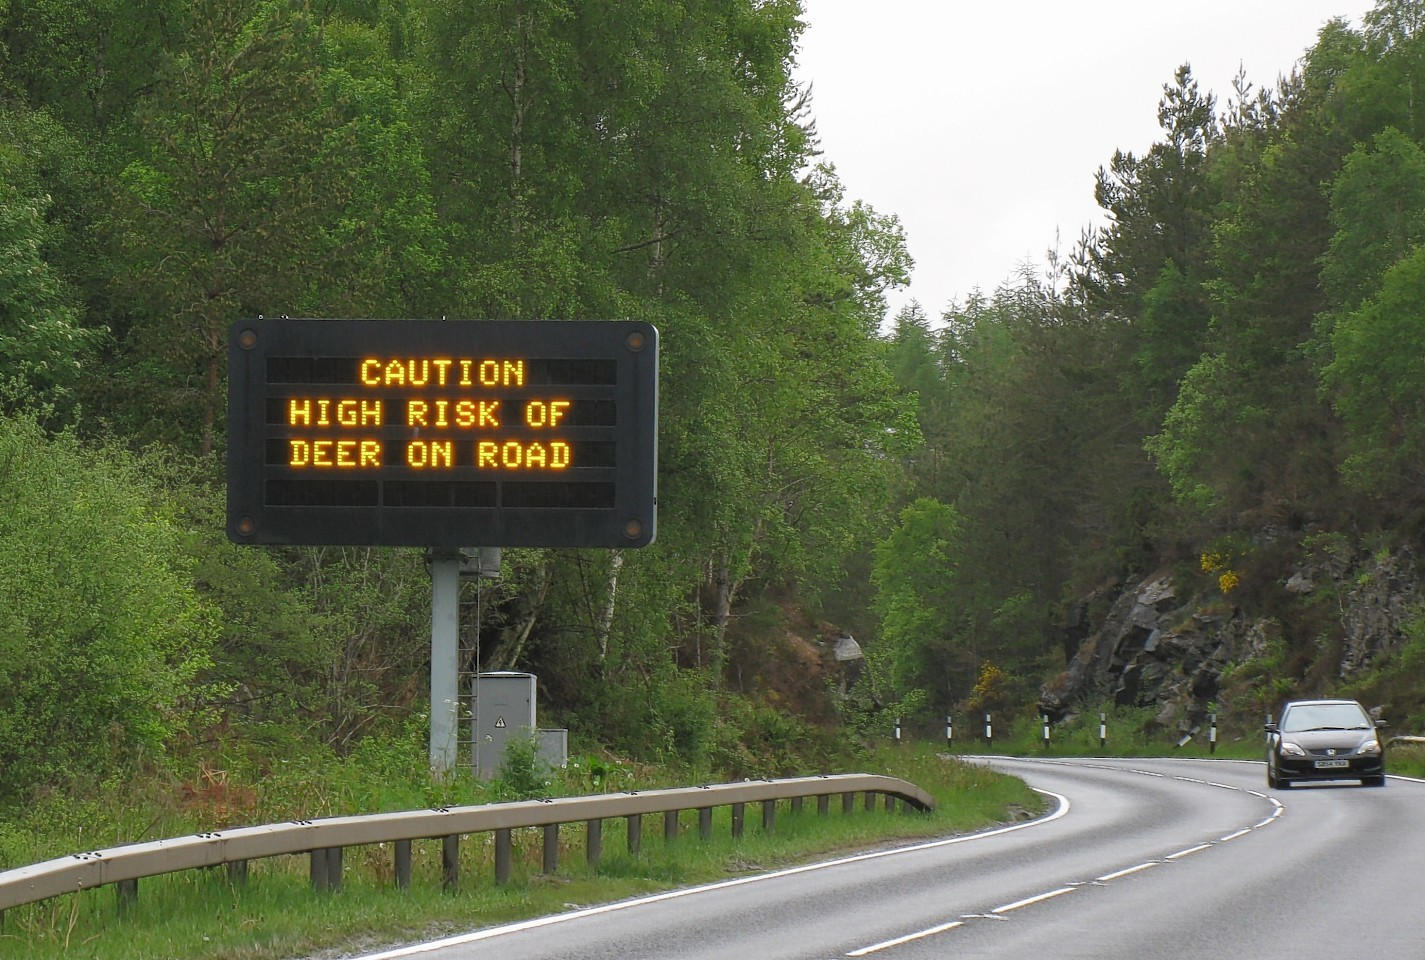 Warning of deer on trunk roads this Autumn